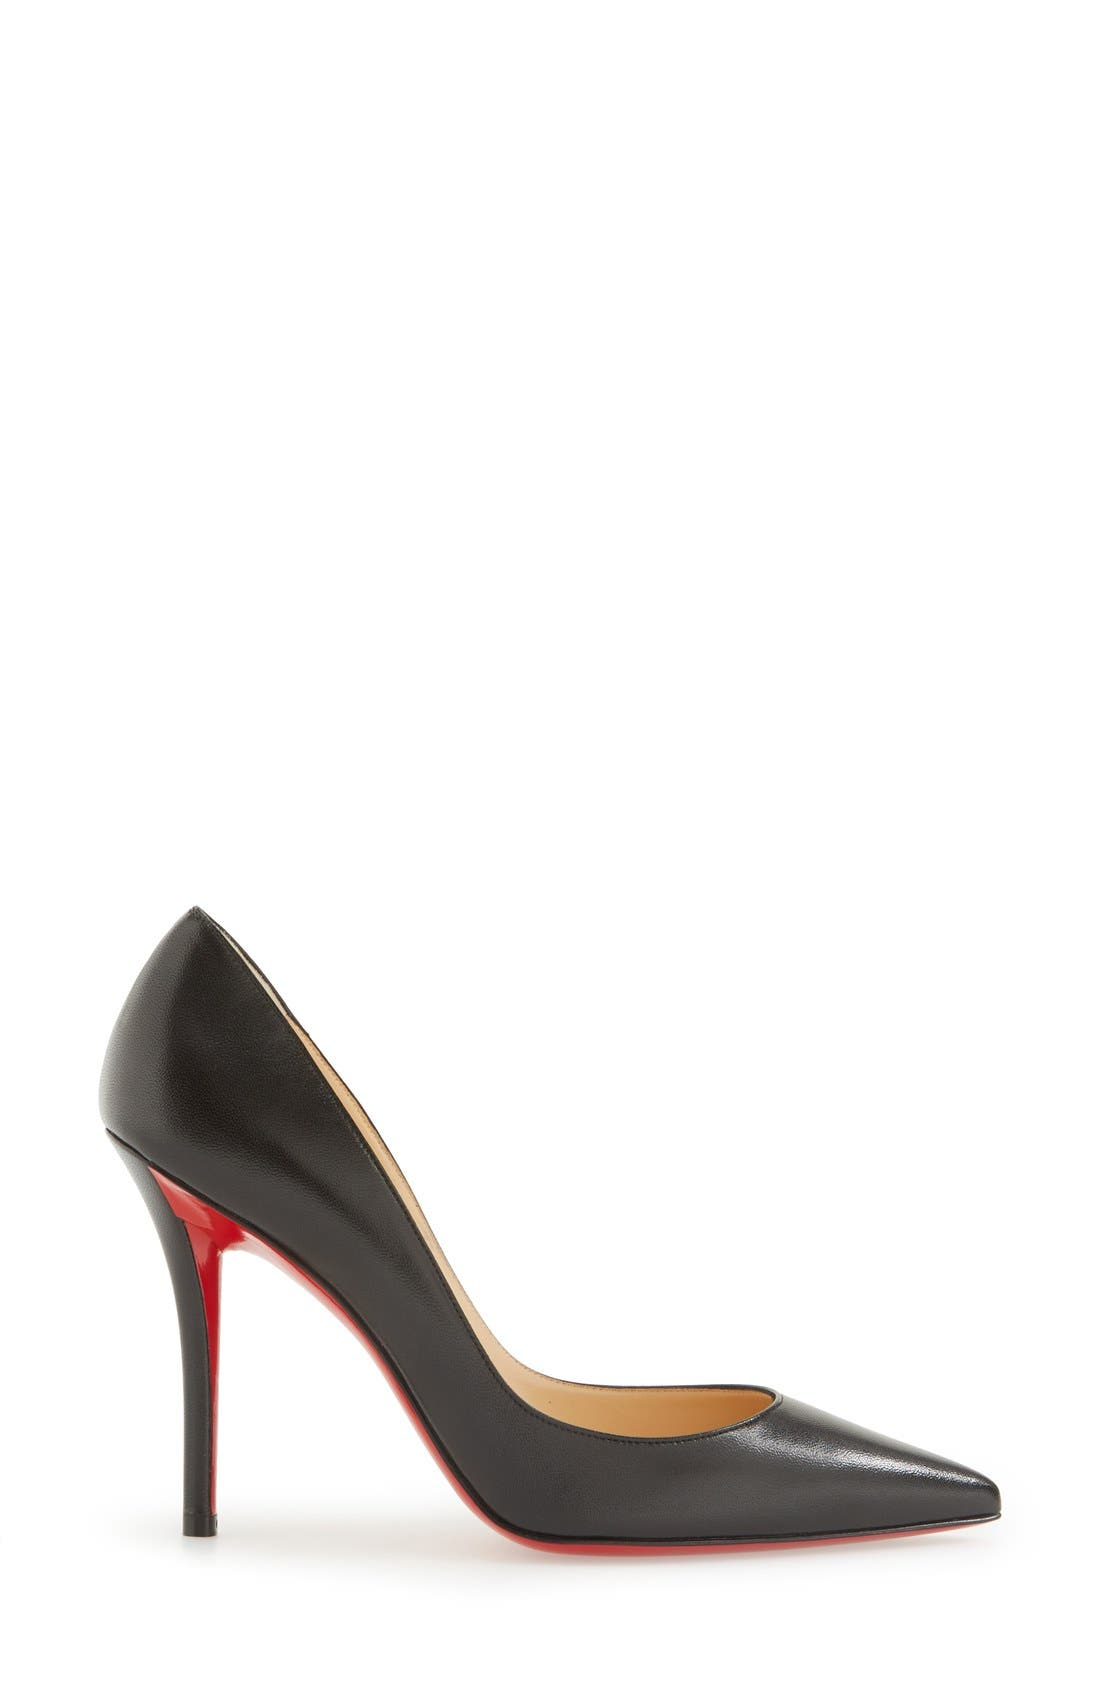 'Apostrophy' Pointy Toe Pump,                             Alternate thumbnail 18, color,